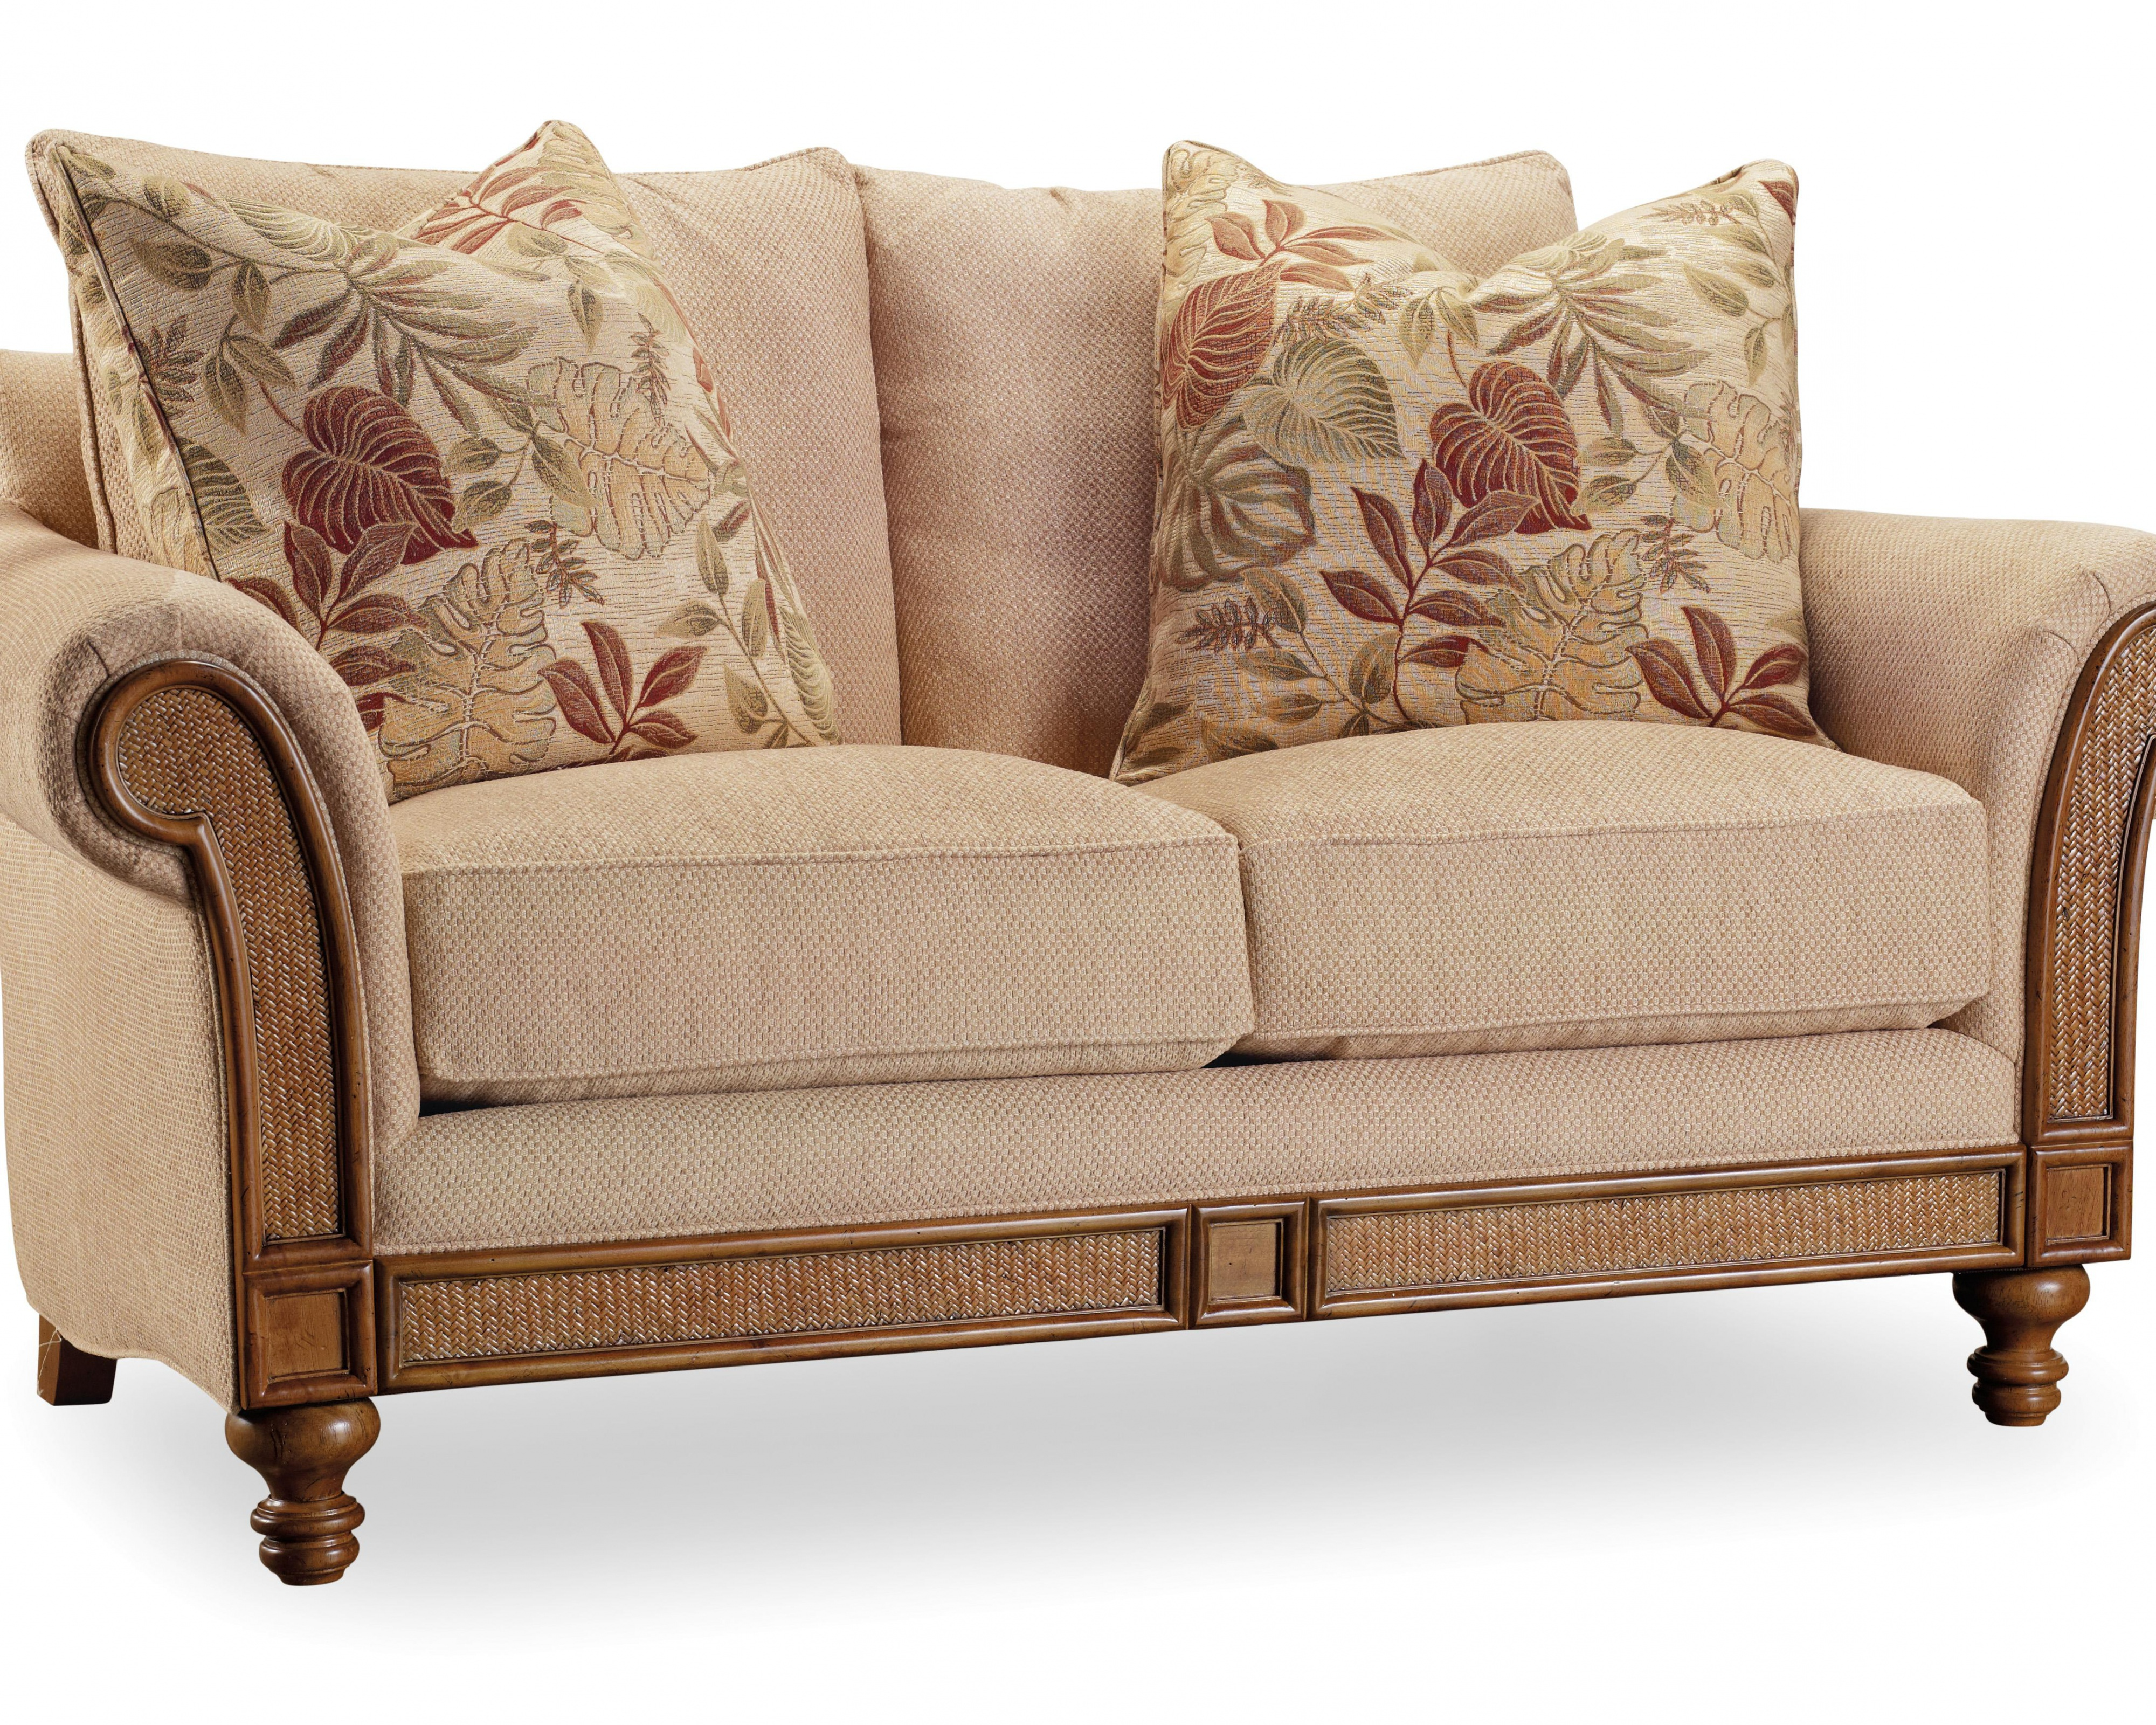 Fine Two Seater Sofa Loveseat Hooker Furniture Dailytribune Chair Design For Home Dailytribuneorg